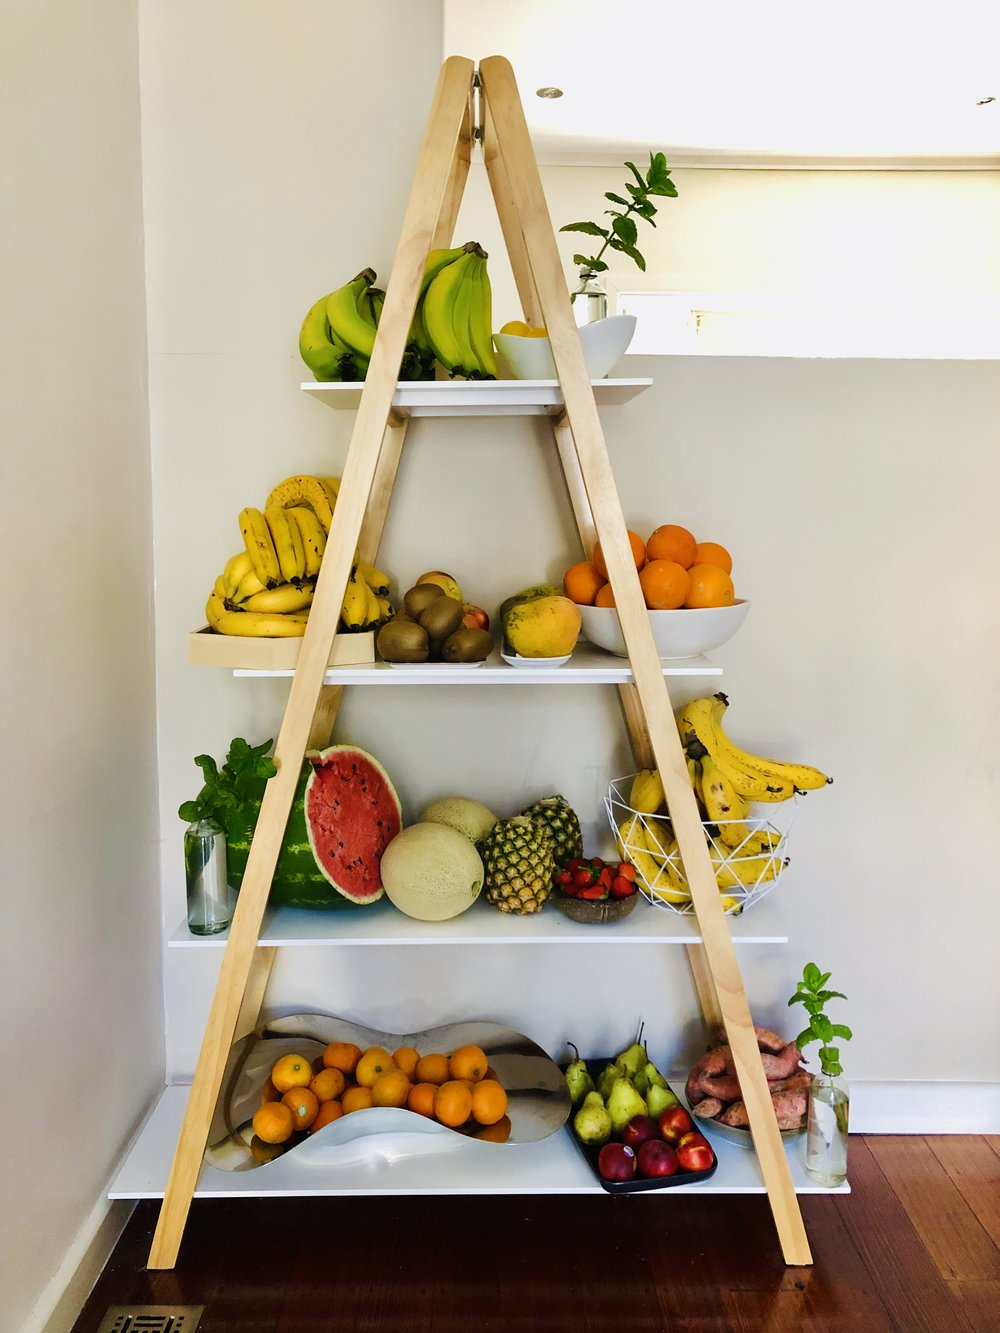 All the fruit and I keep it on display so it's accesible to Hunter